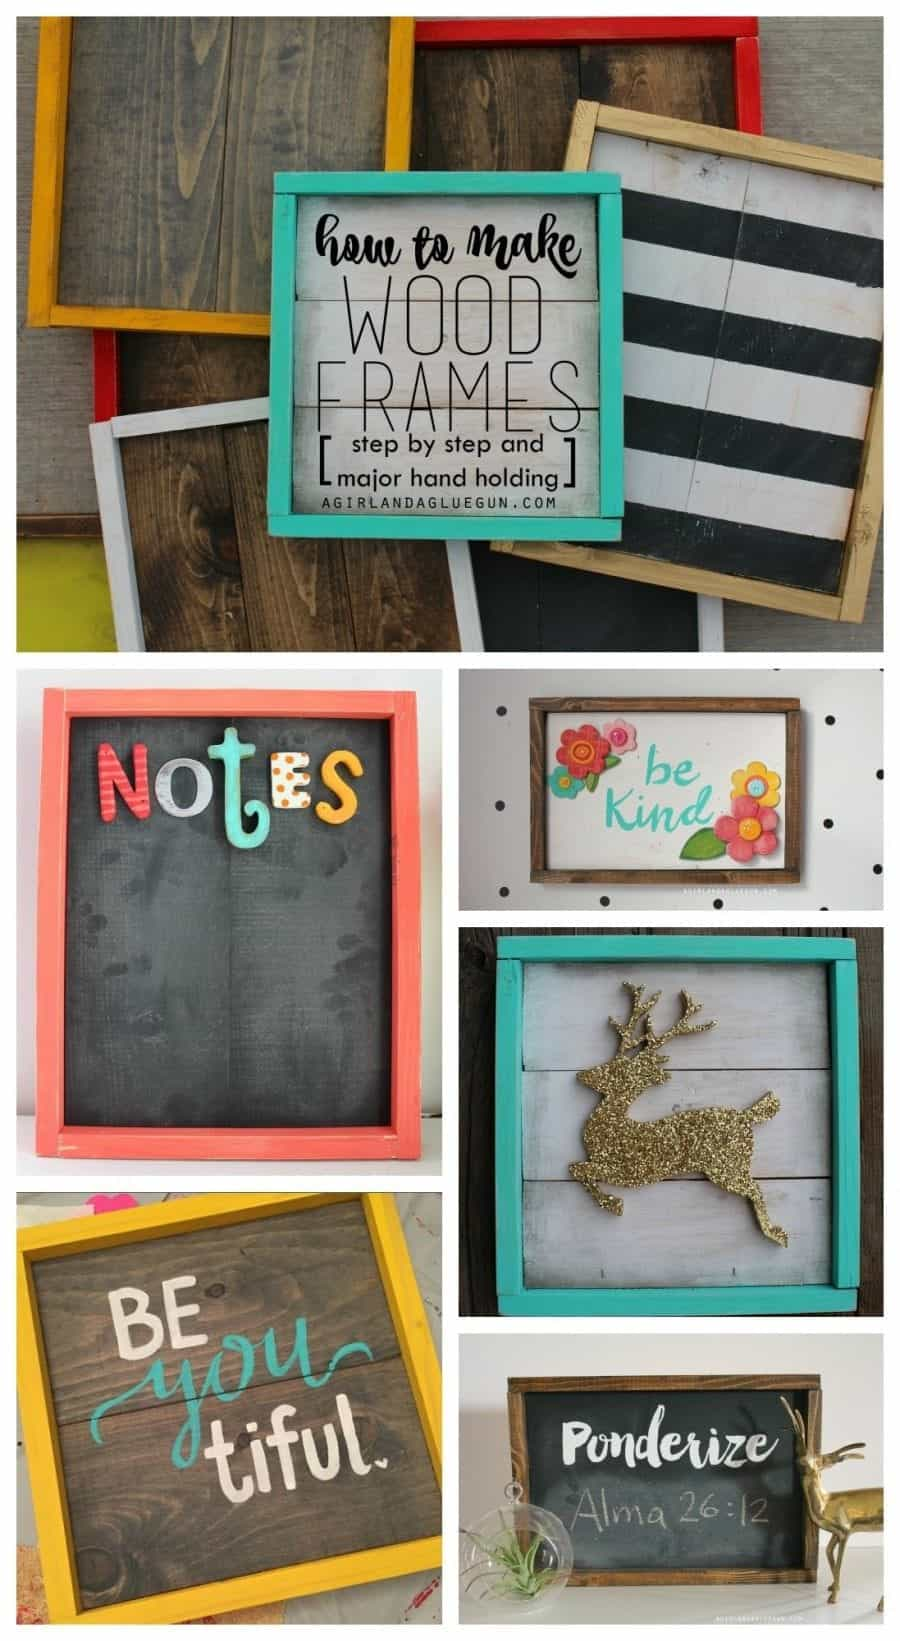 how-to-make-wood-frames-easy-diy-with-step-by-step-instructions-Lots-of-fun-decorations-ideas--900x1641